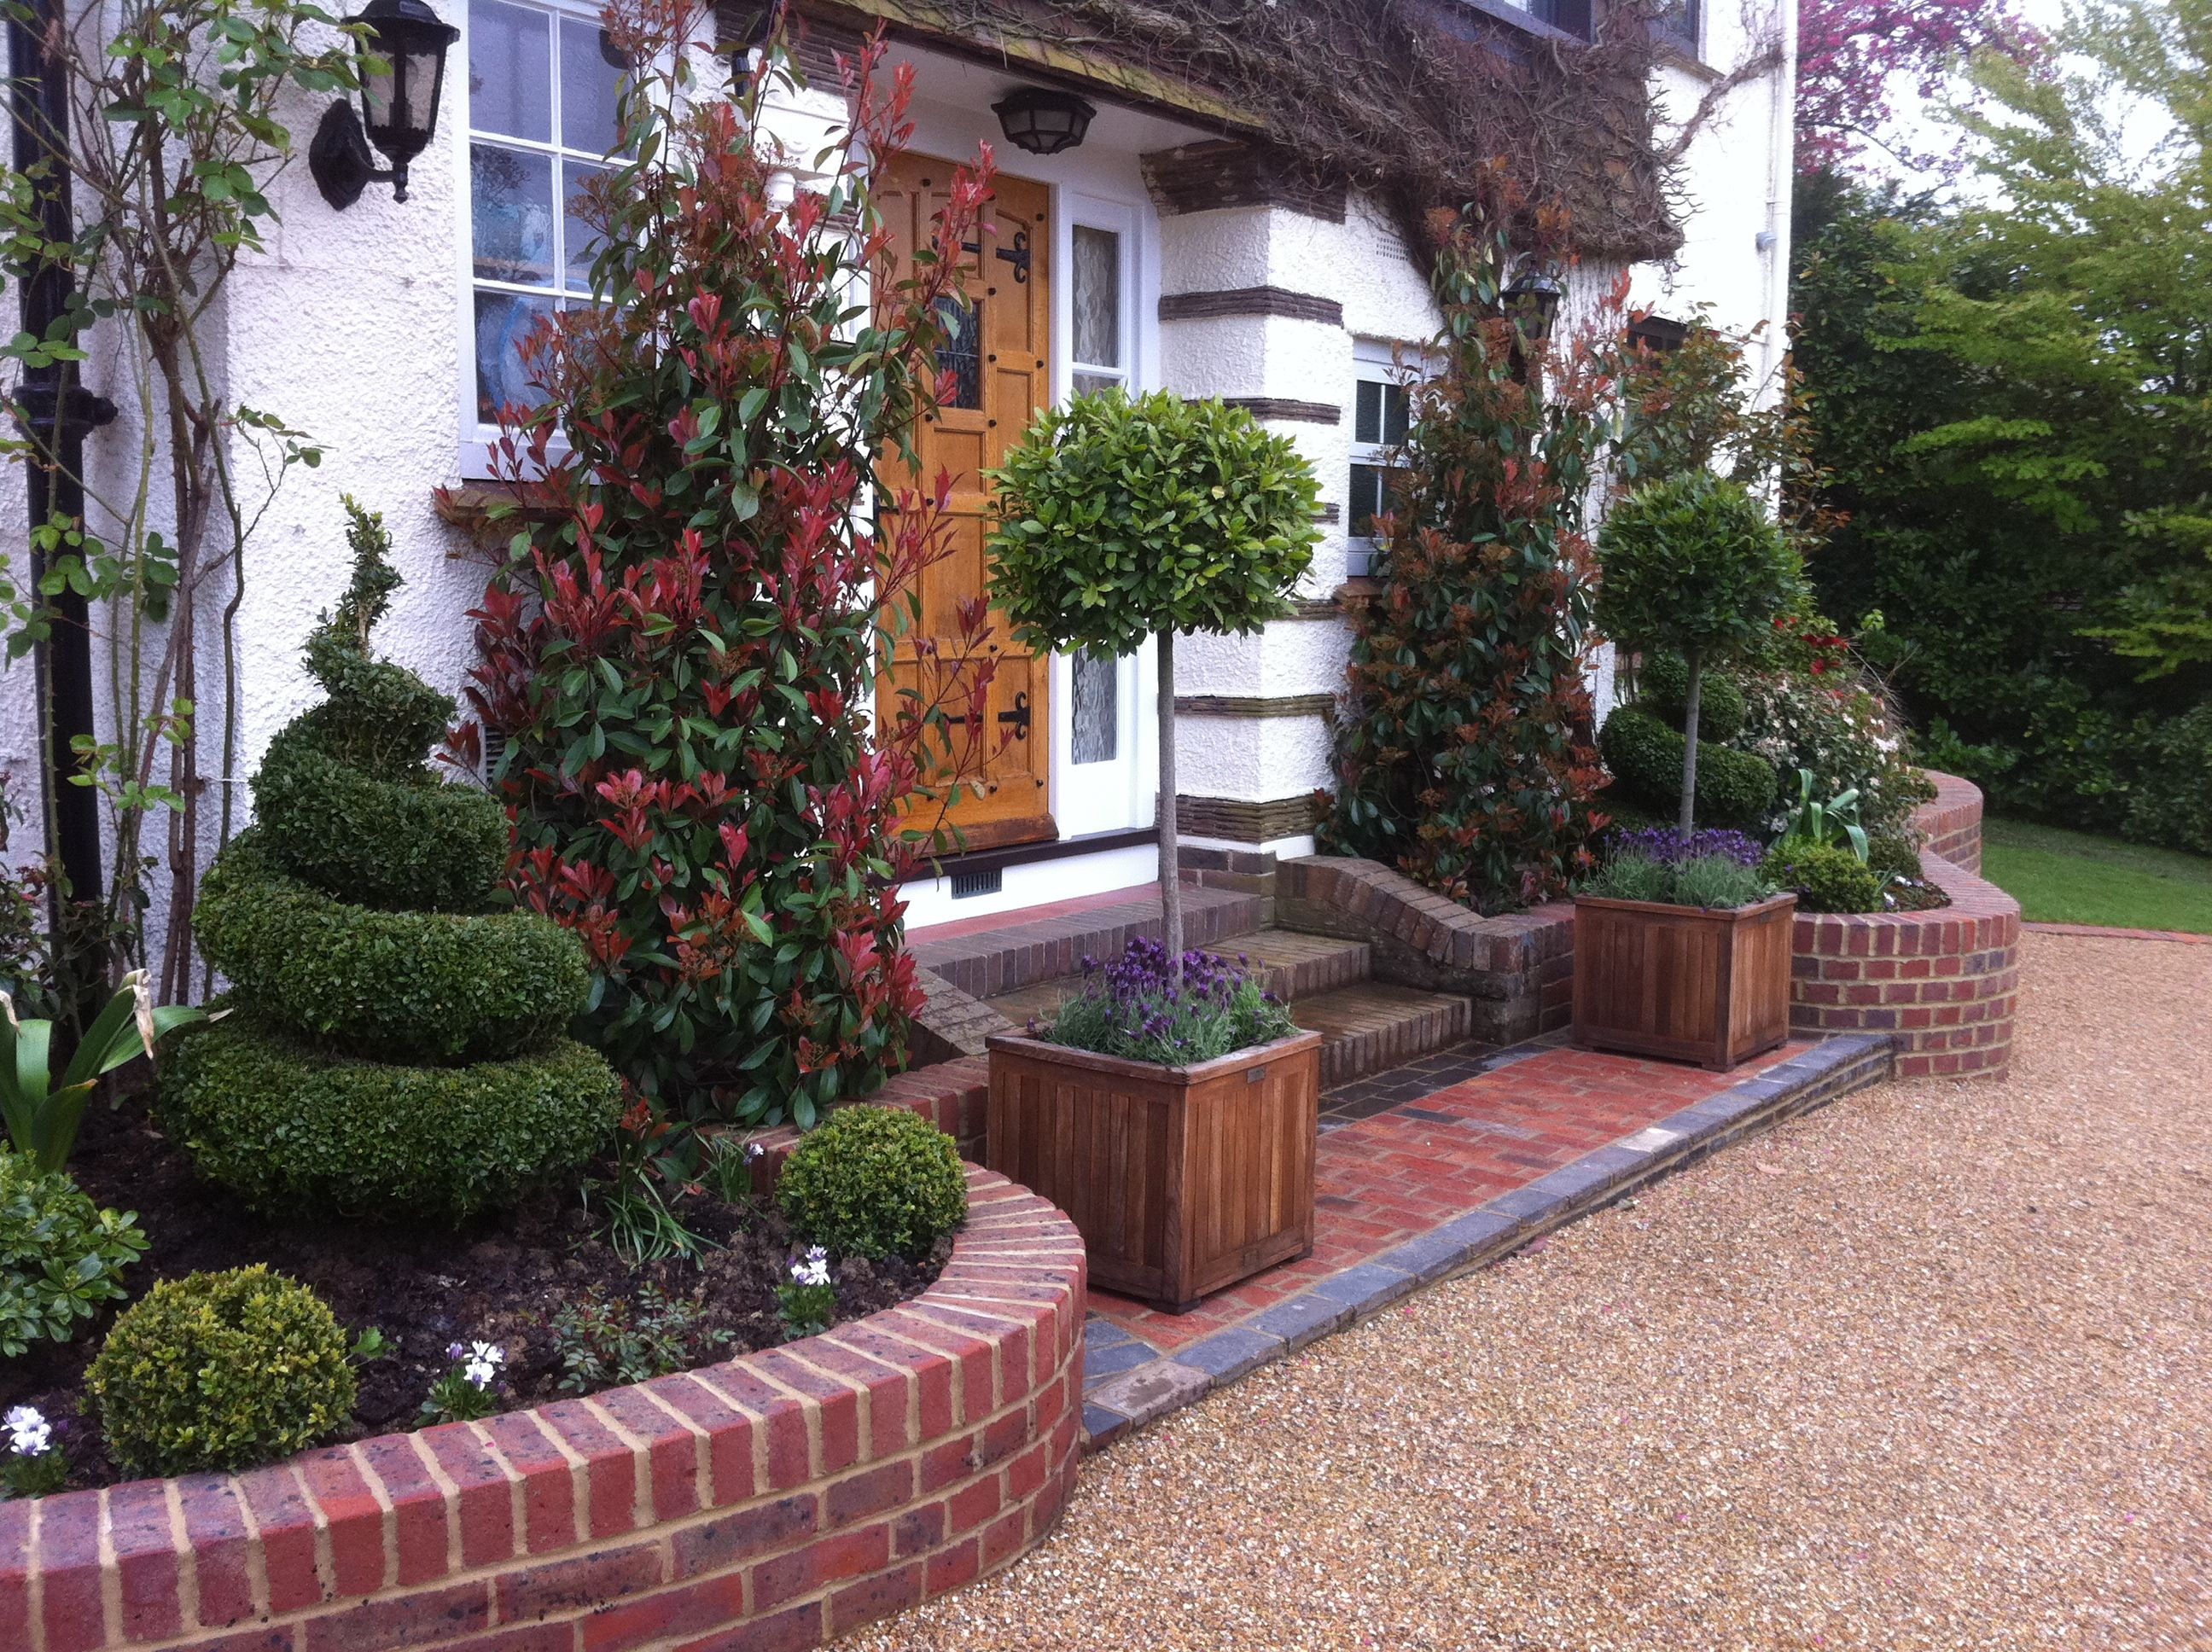 Awesome Driveway Gardens Front Gardens Really Garden Proud - Front garden driveway ideas uk